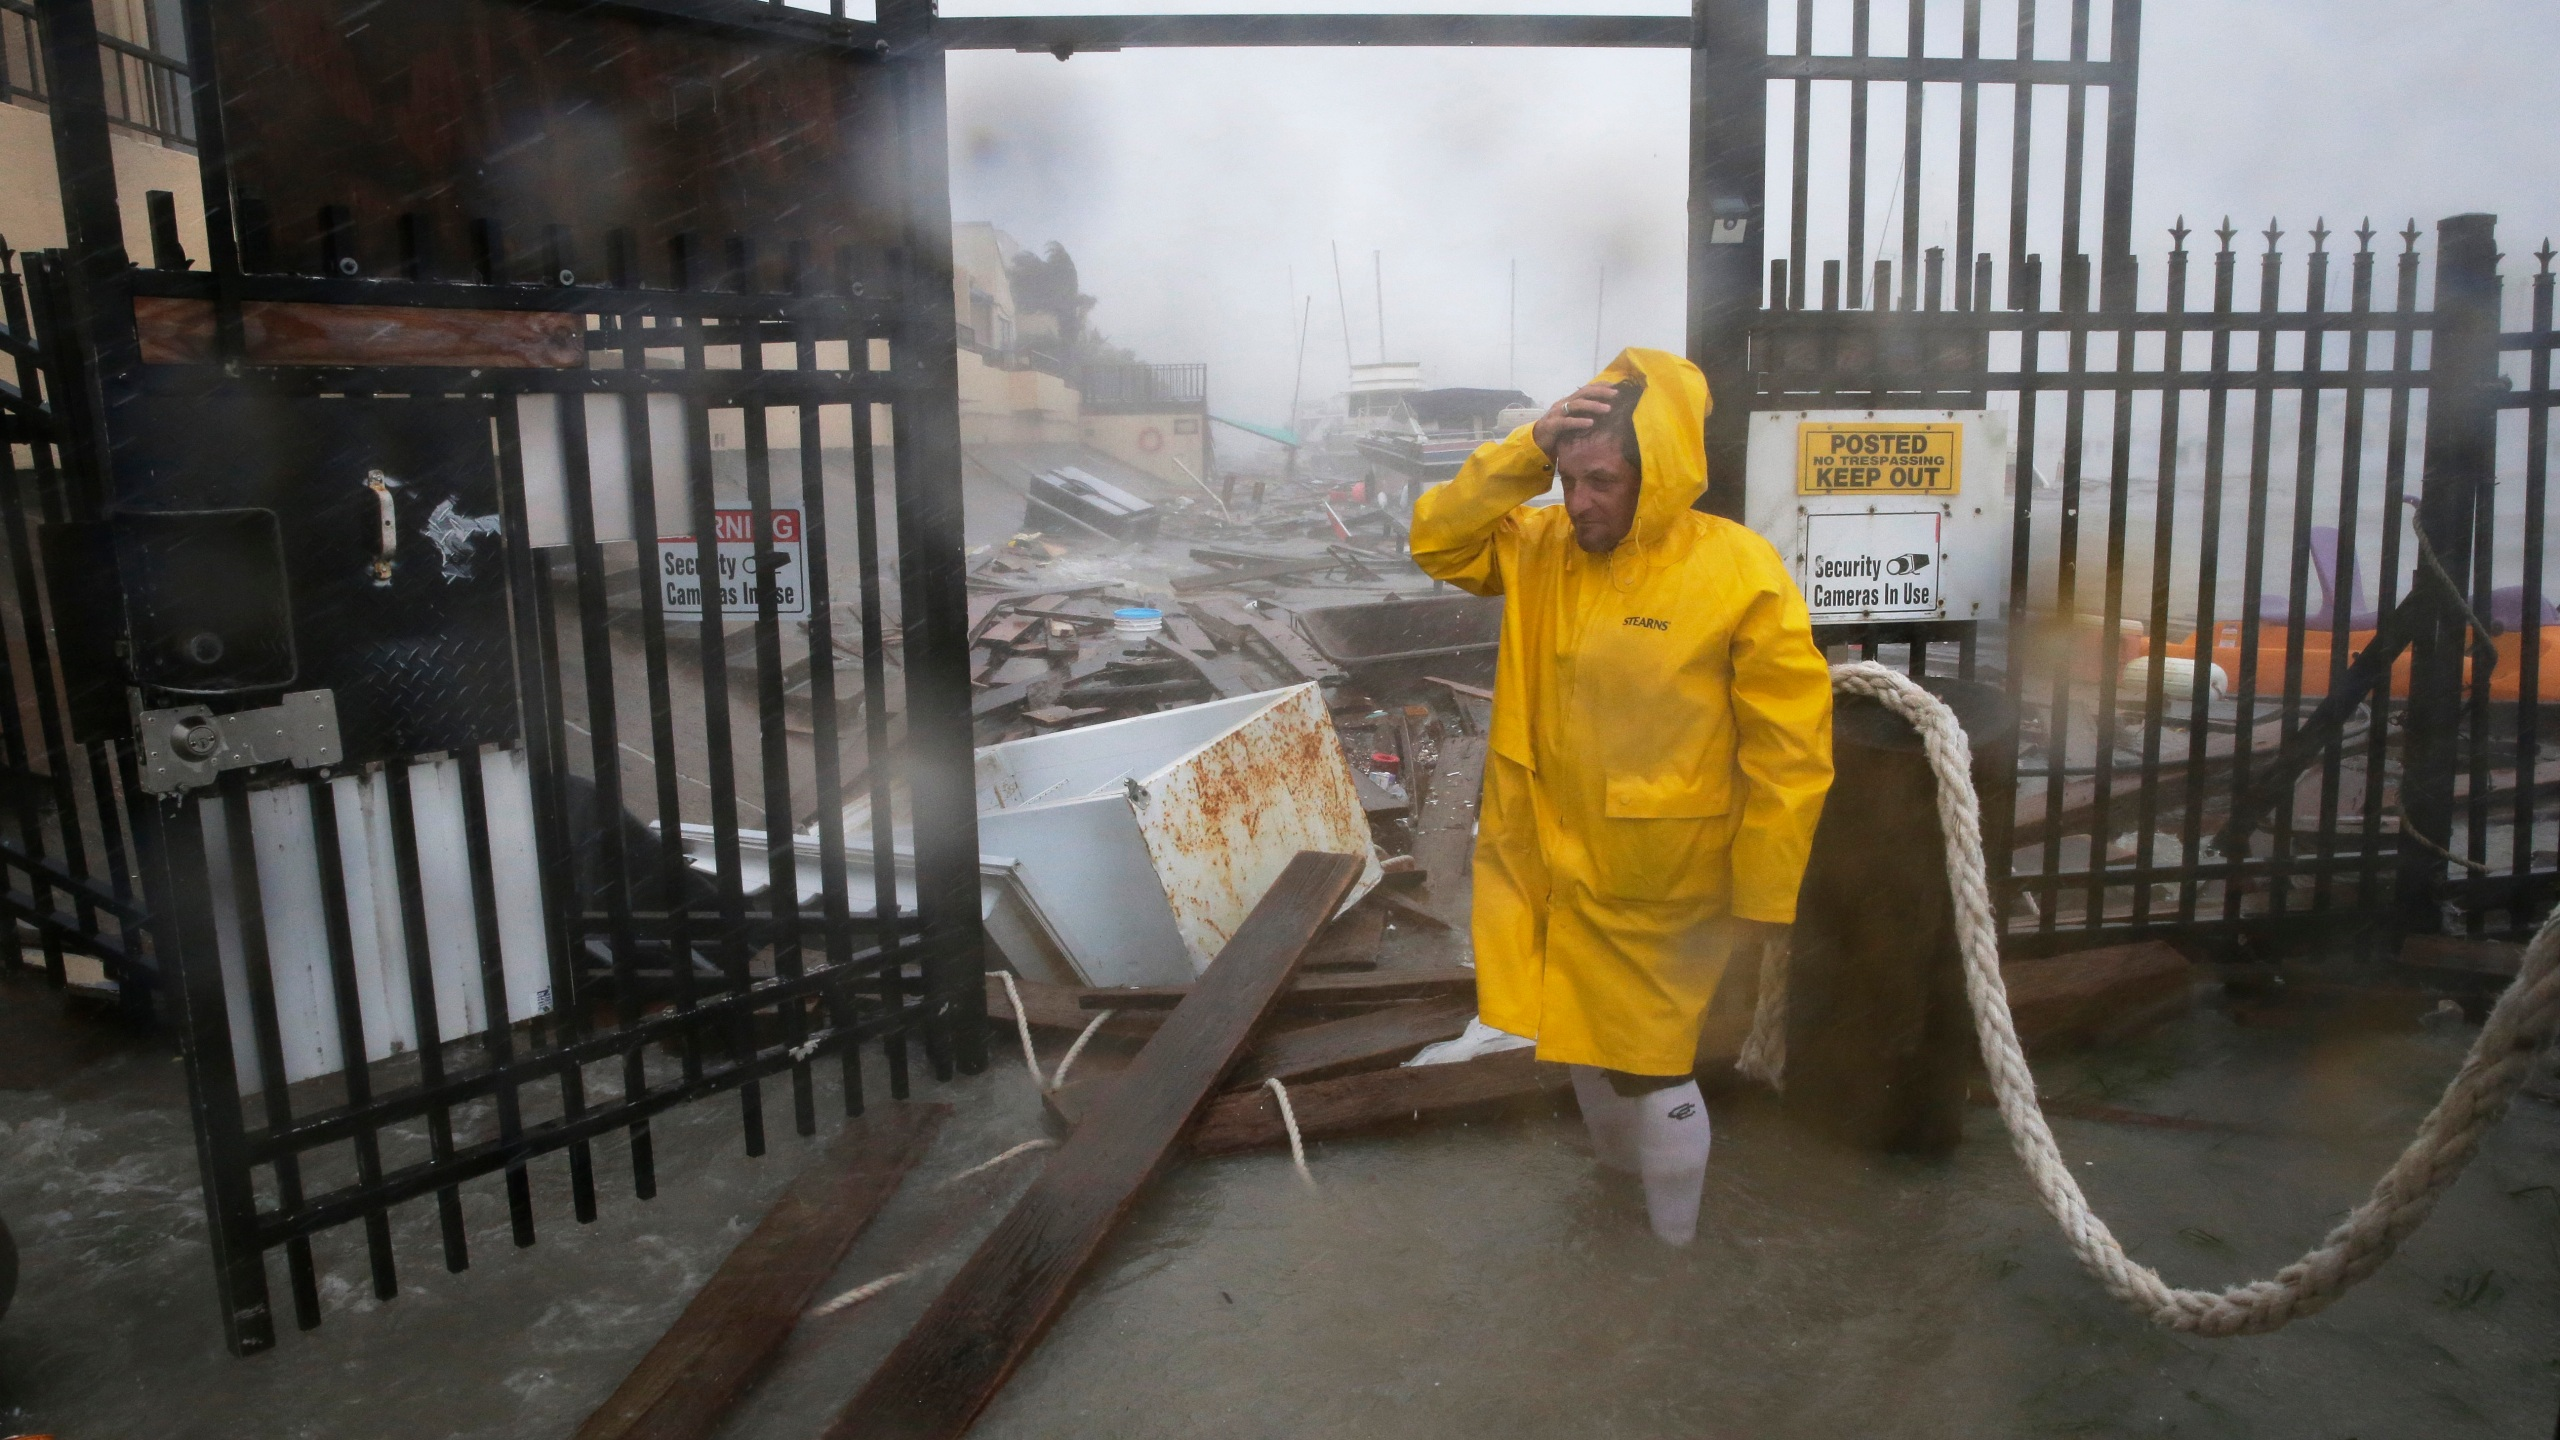 Jame Rowles examines the damage after the docks at the marina where his boat was secured were destroyed as Hurricane Hanna made landfall, July 25, 2020, in Corpus Christi, Texas. (AP Photo/Eric Gay)